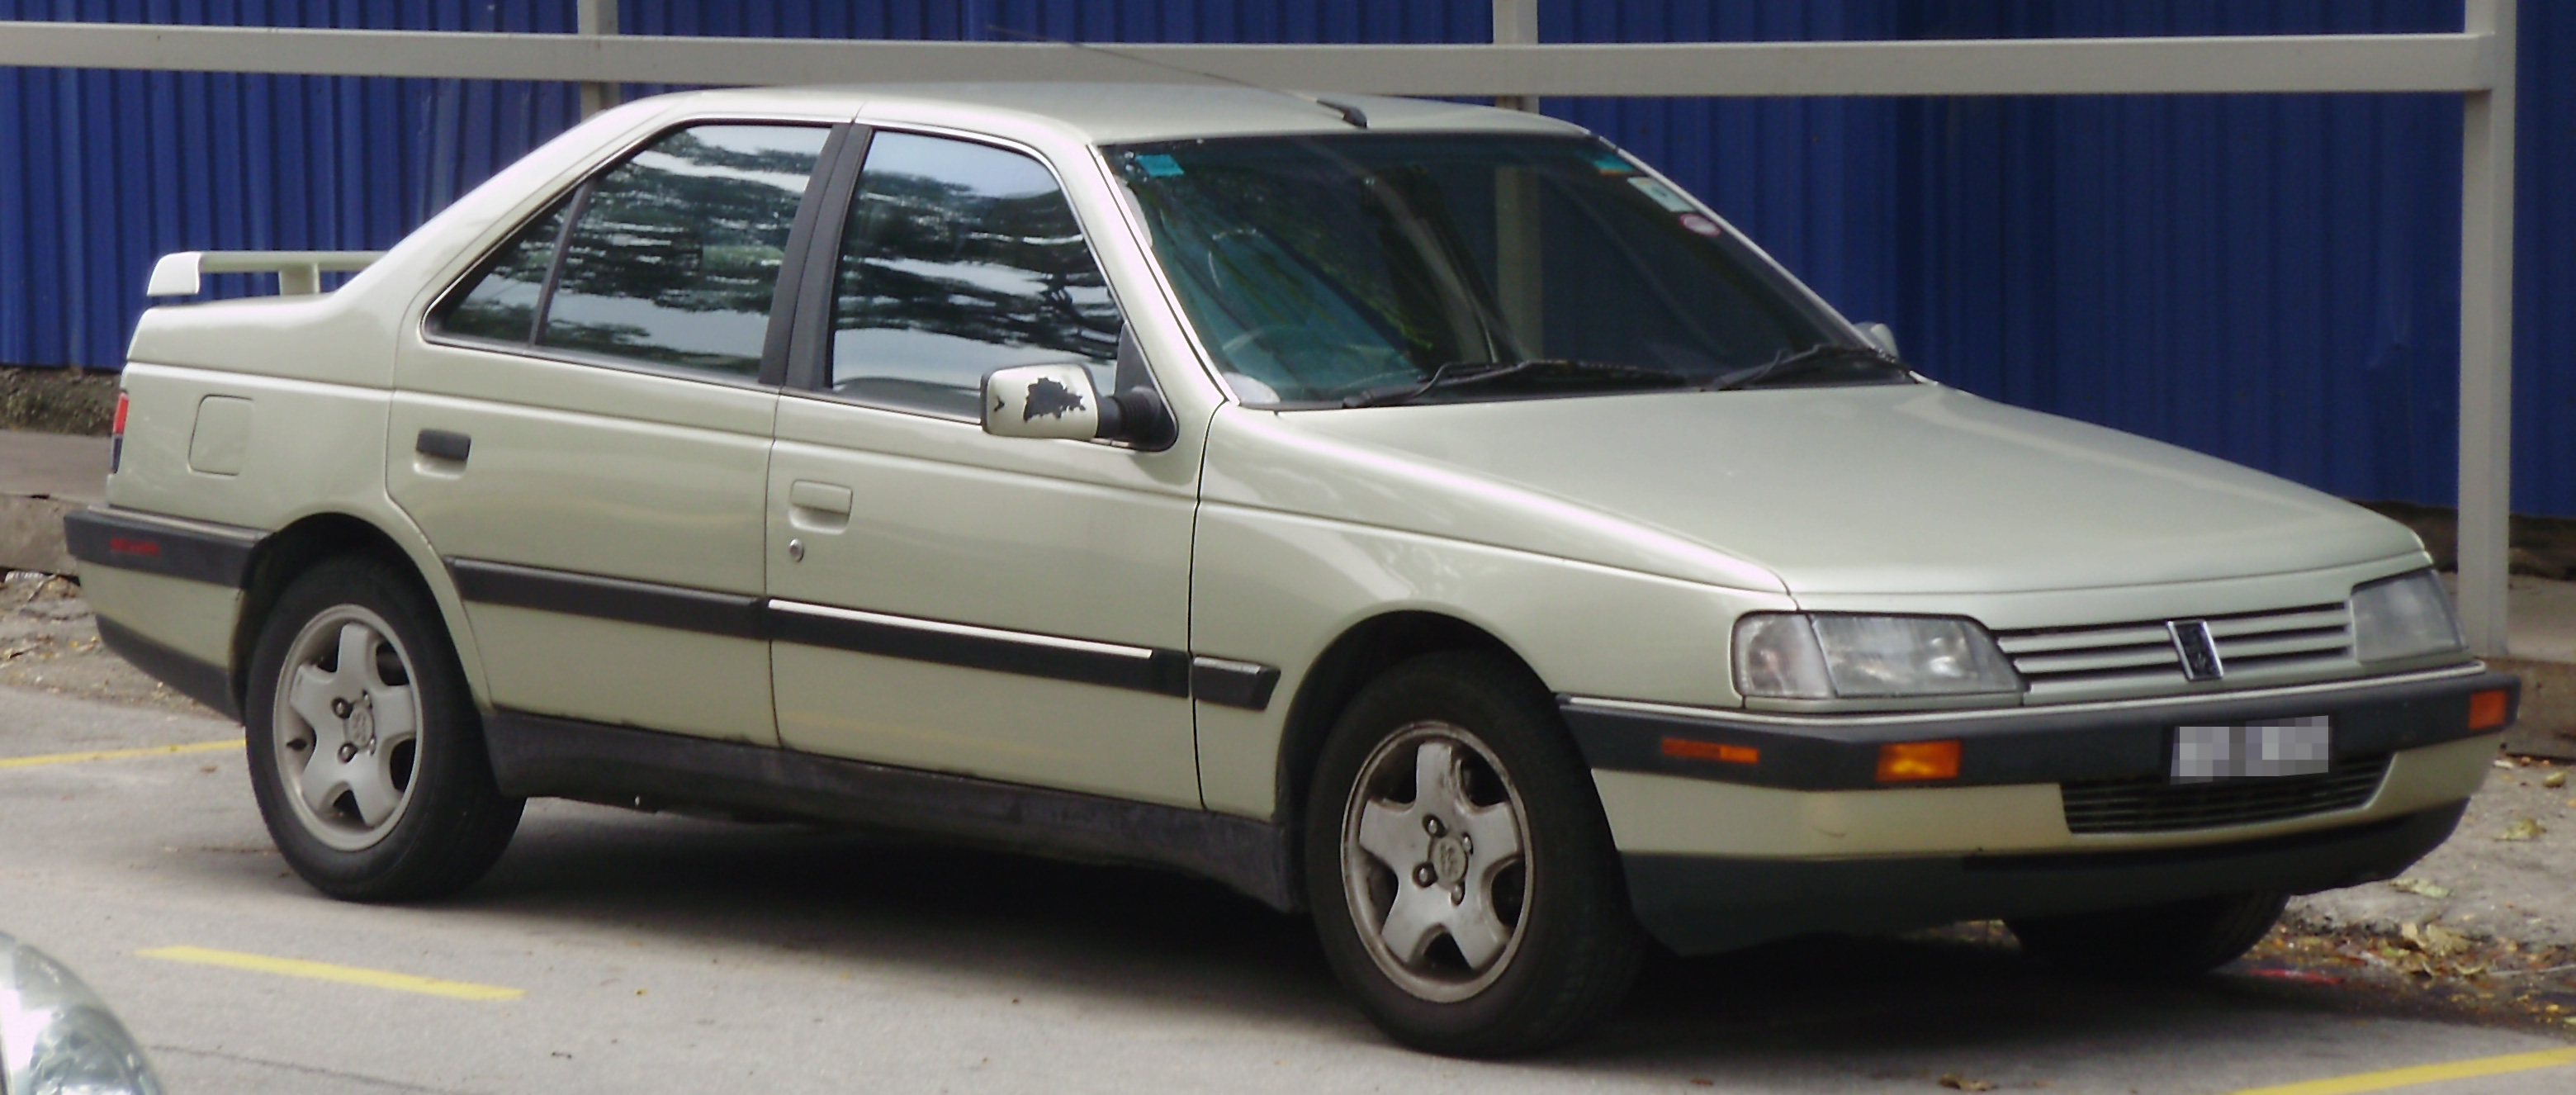 File:Peugeot 405 (first facelift) (front), Kuala Lumpur.jpg